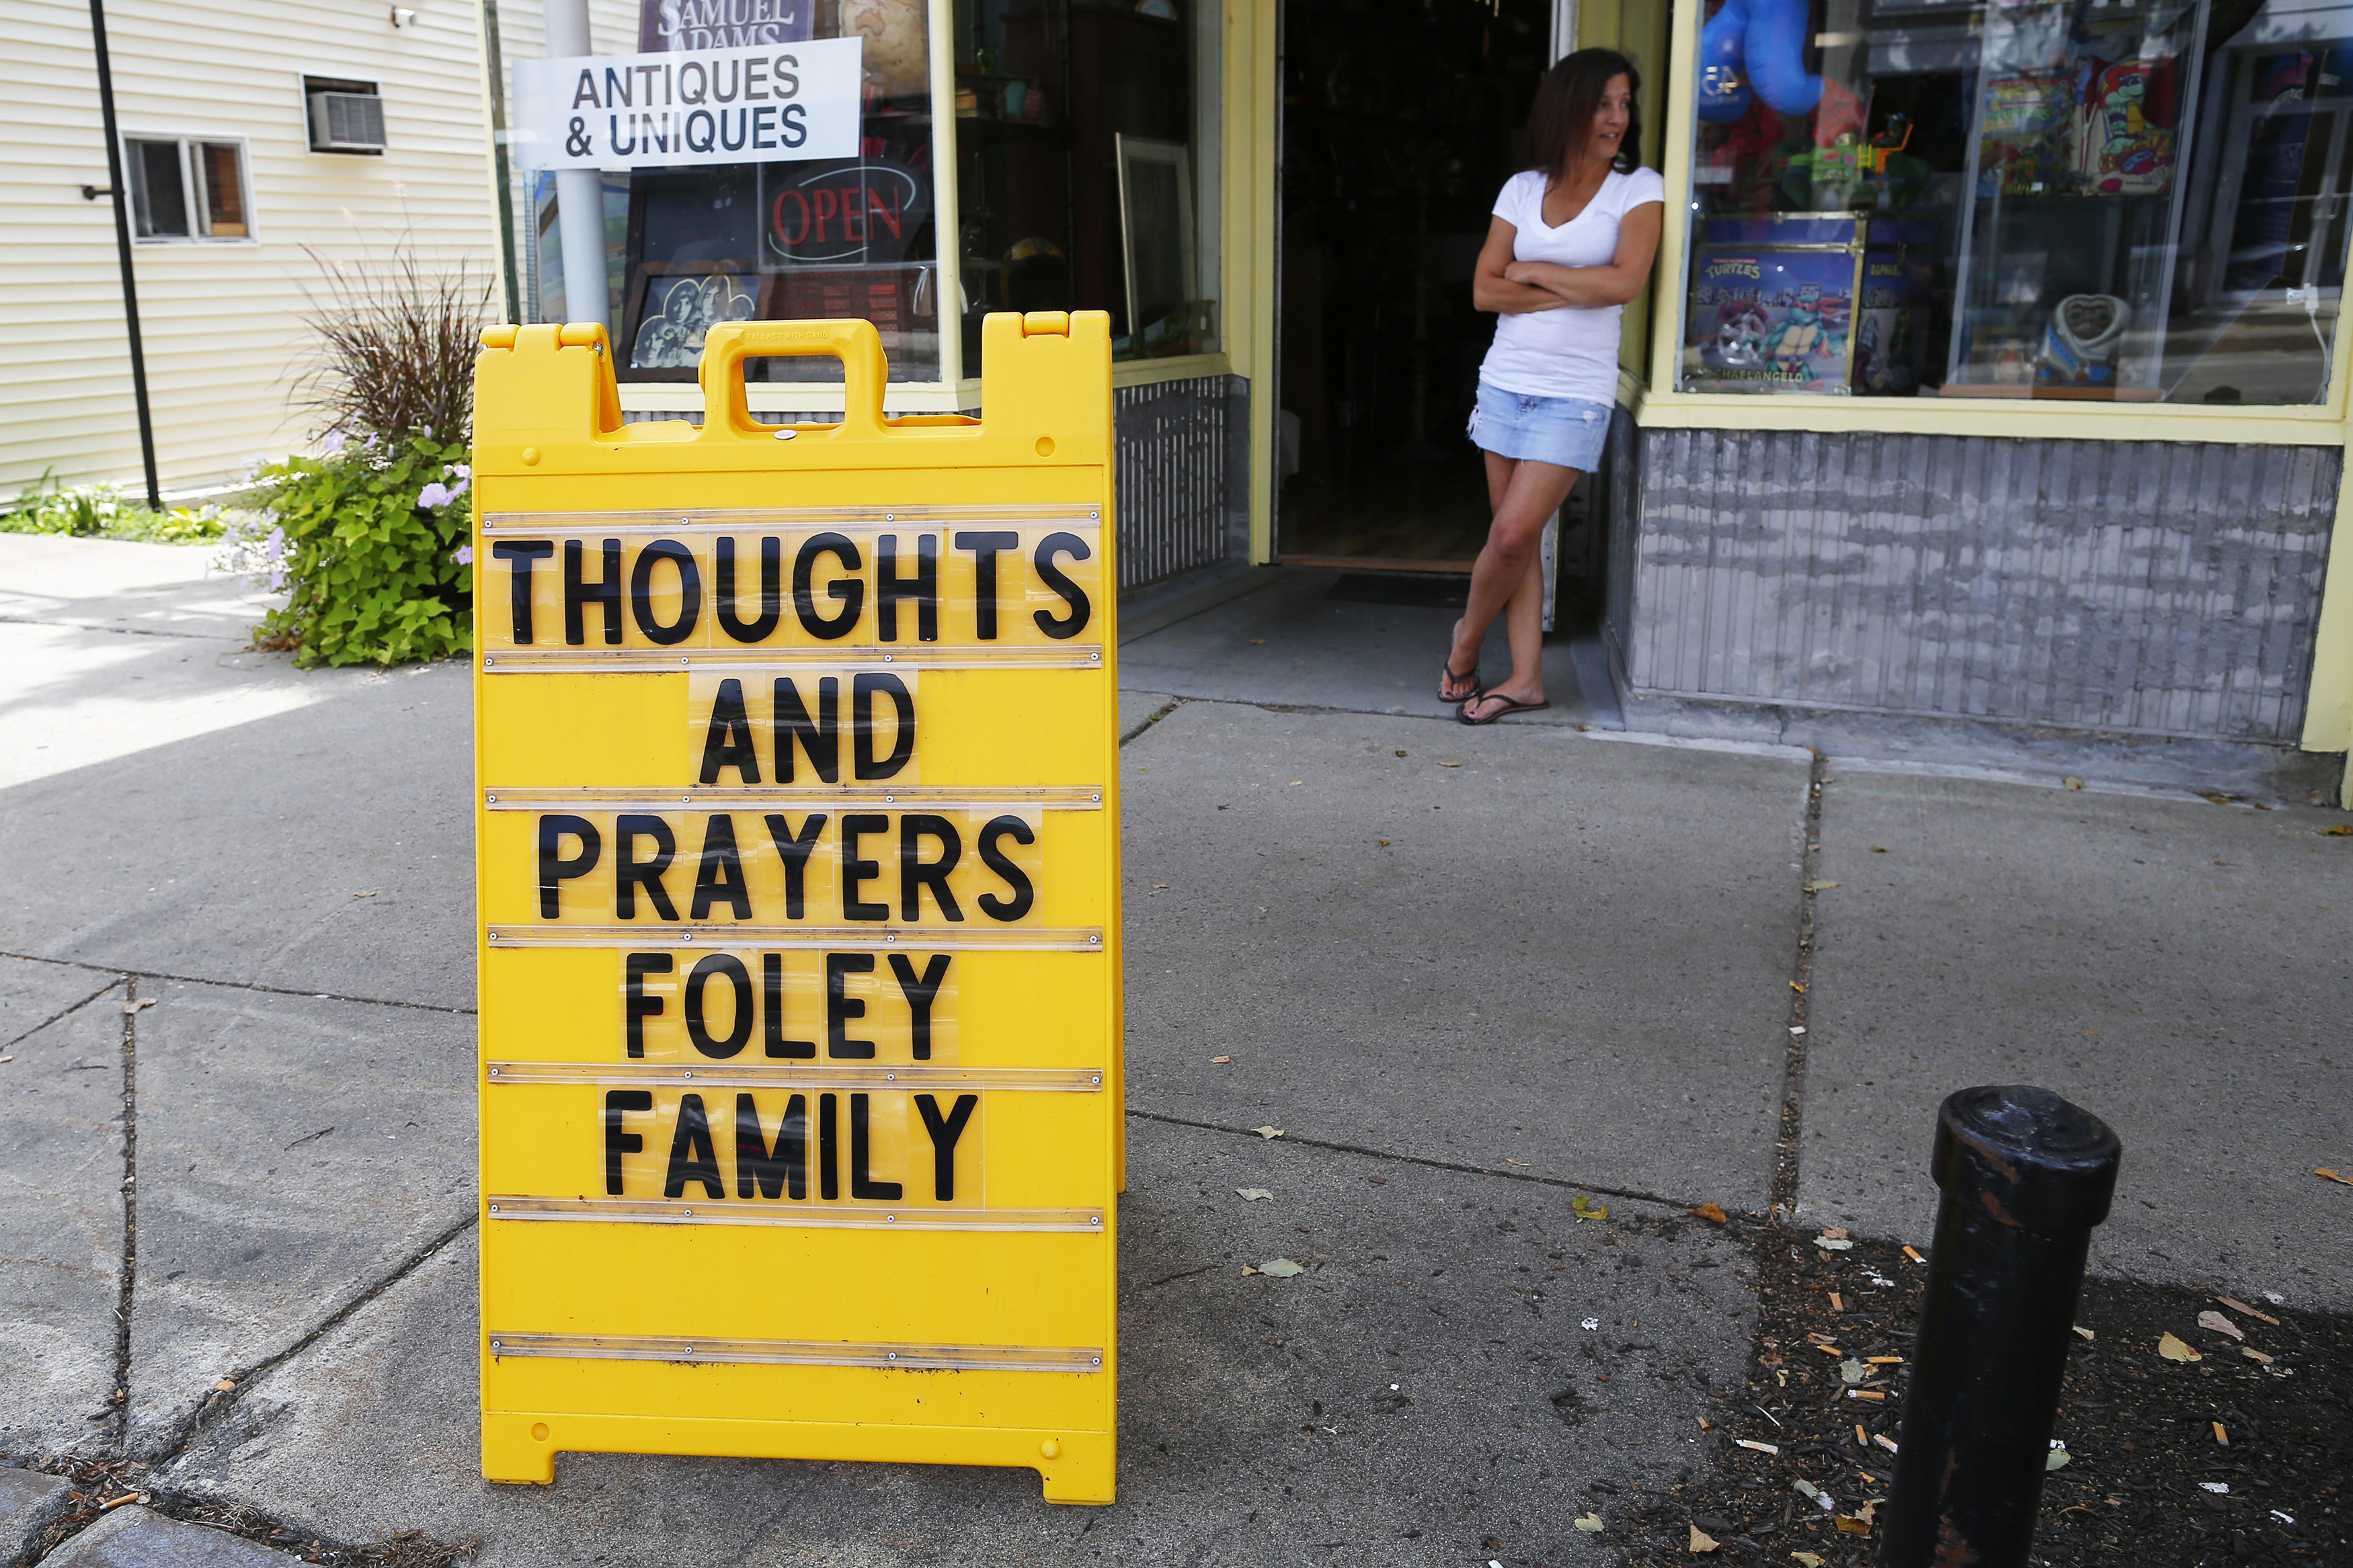 A sign outside a shop remembers James Foley in his hometown of Rochester, New Hampshire. Islamic State militants killed the journalist in a brutal videotaped beheading in revenge for US air strikes in Iraq.